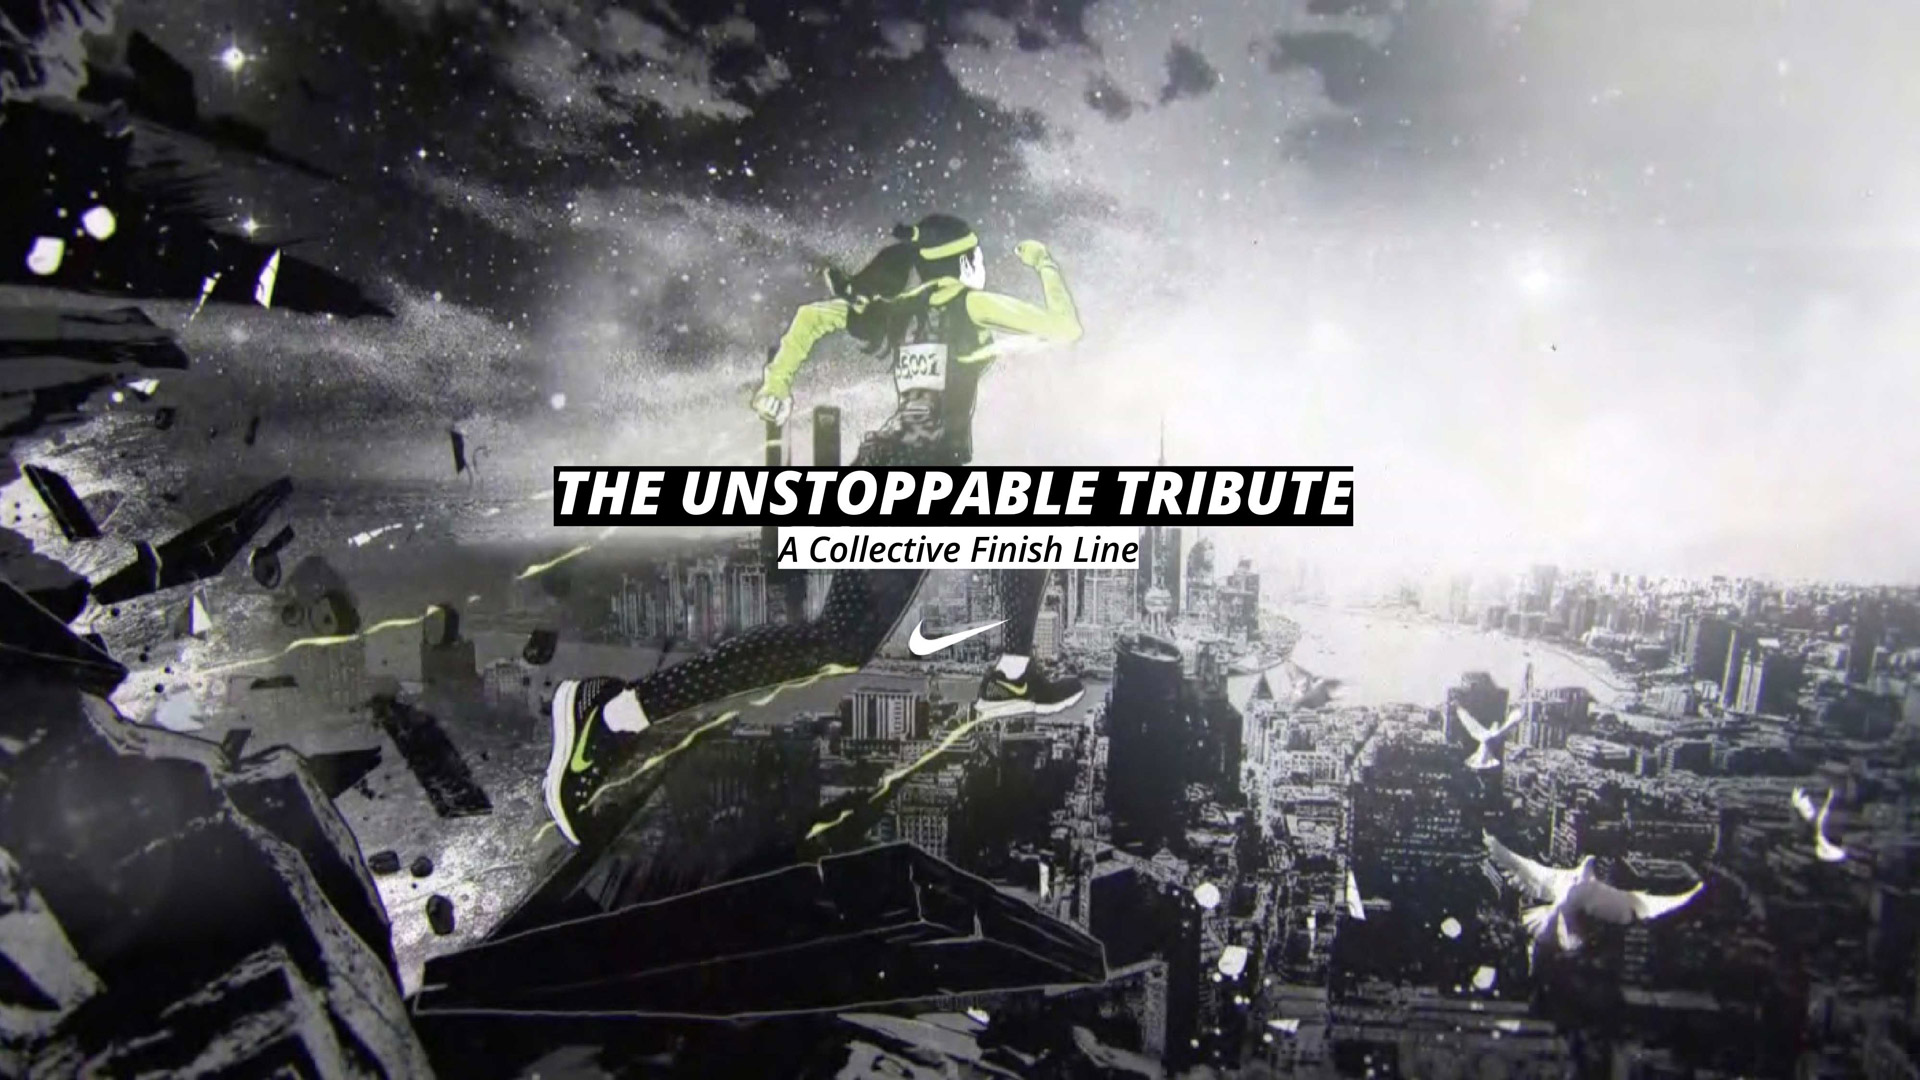 Unstoppable Tribute